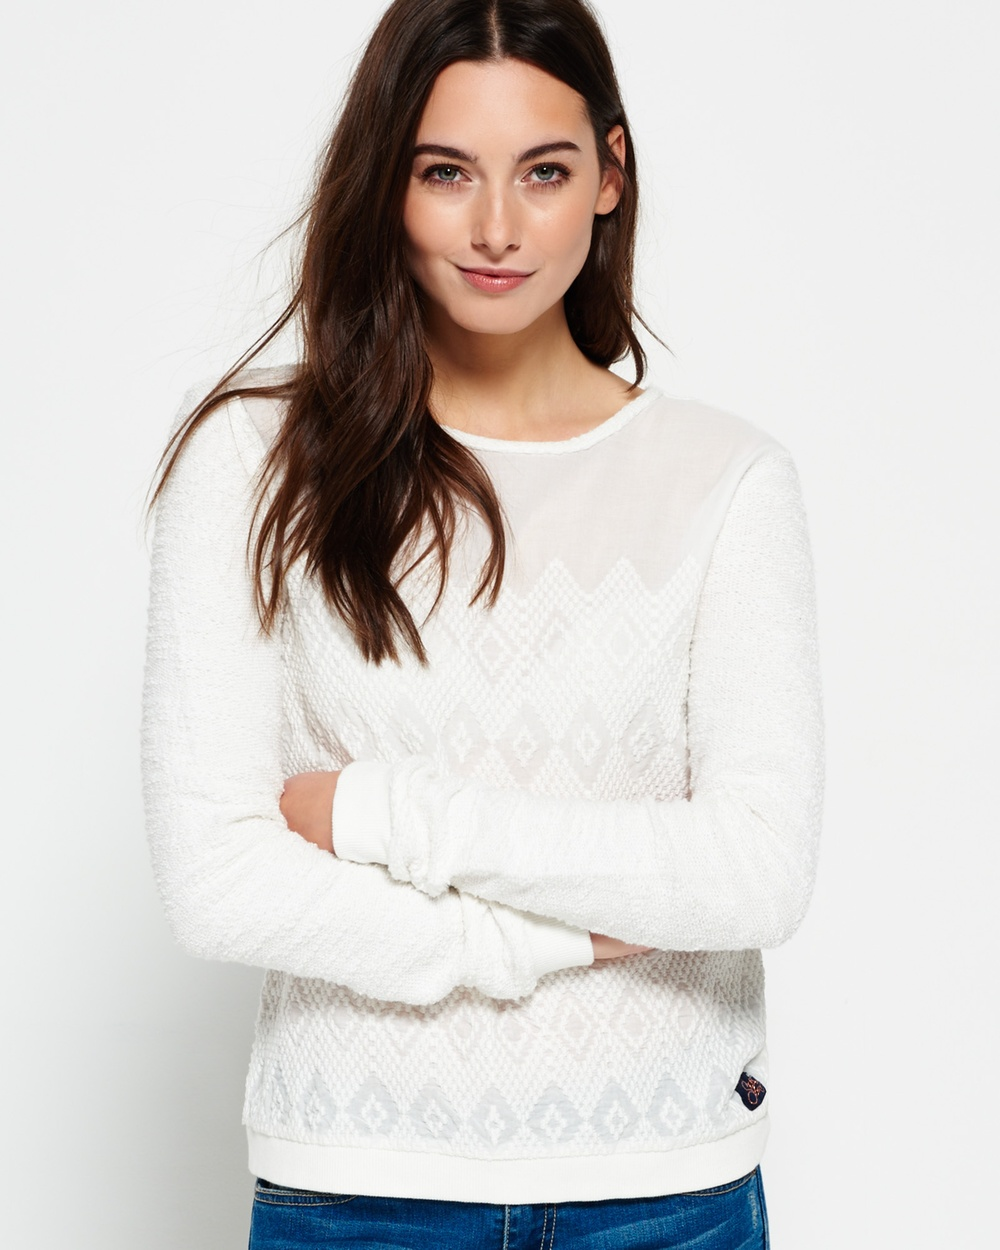 Superdry Embroidered Boho Crew Neck Jumper Tops OFF WHITE Embroidered Boho Crew Neck Jumper